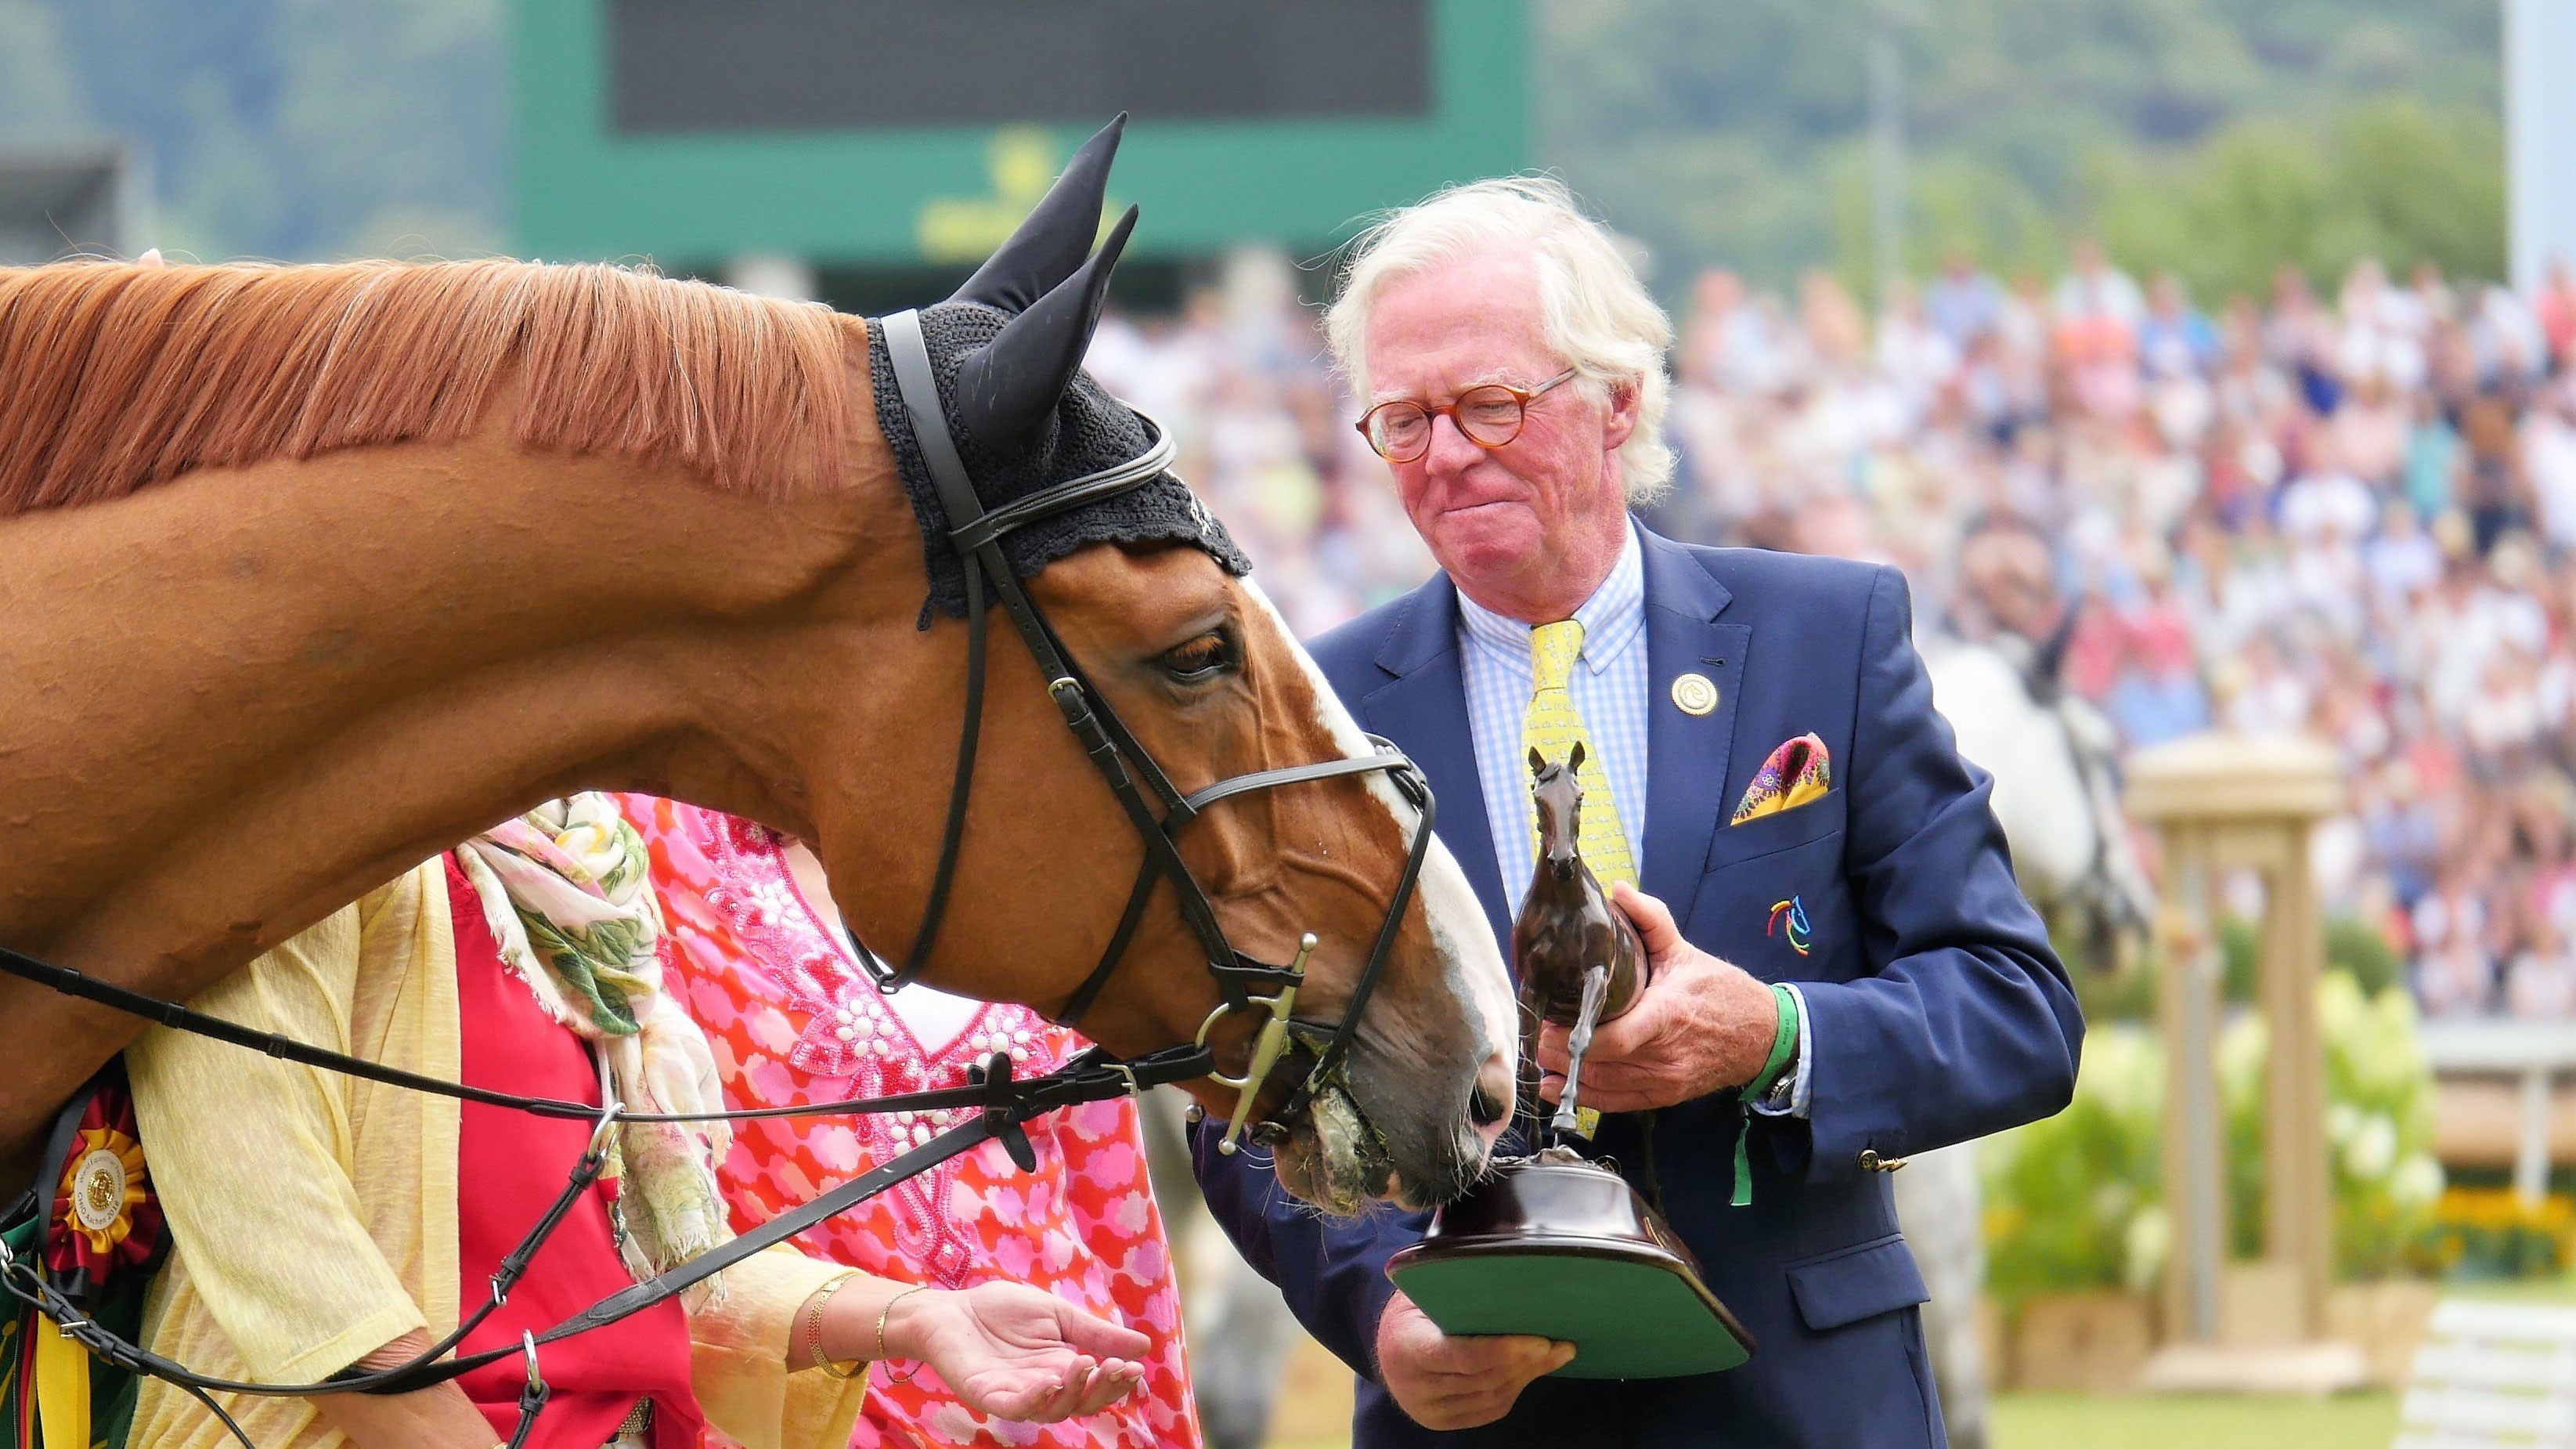 CHIO Aachen: Biggest equestrian festival in the world